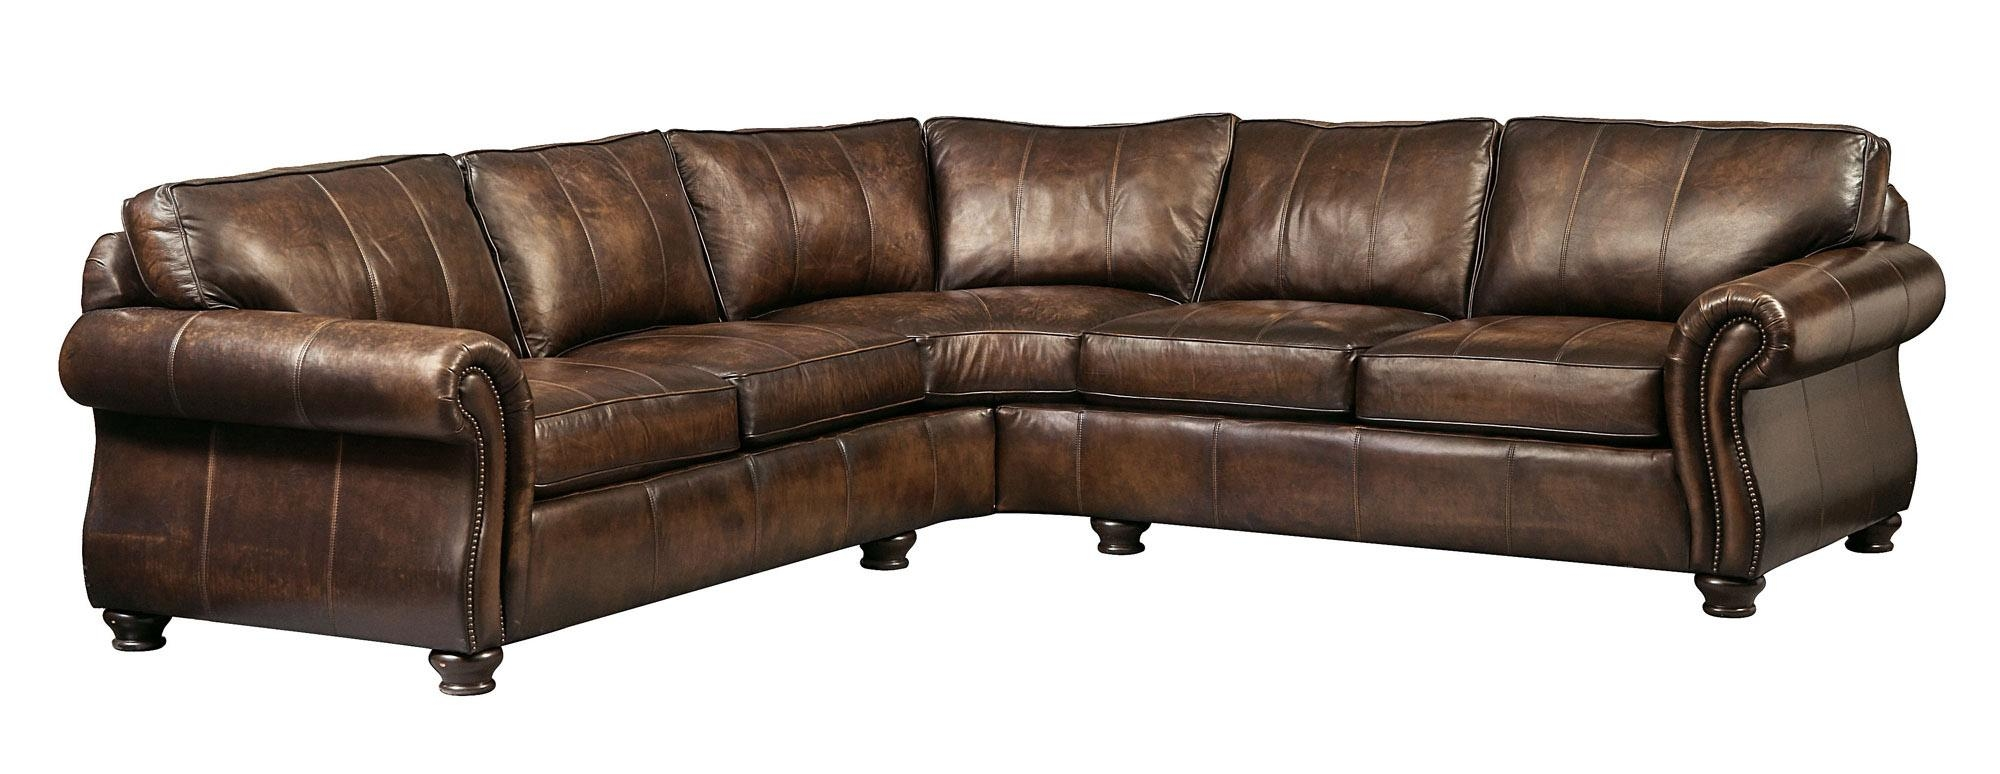 Leather Sofas | Baton Rouge And Lafayette, Louisiana Inside Regarding Foster Leather Sofas (View 12 of 20)